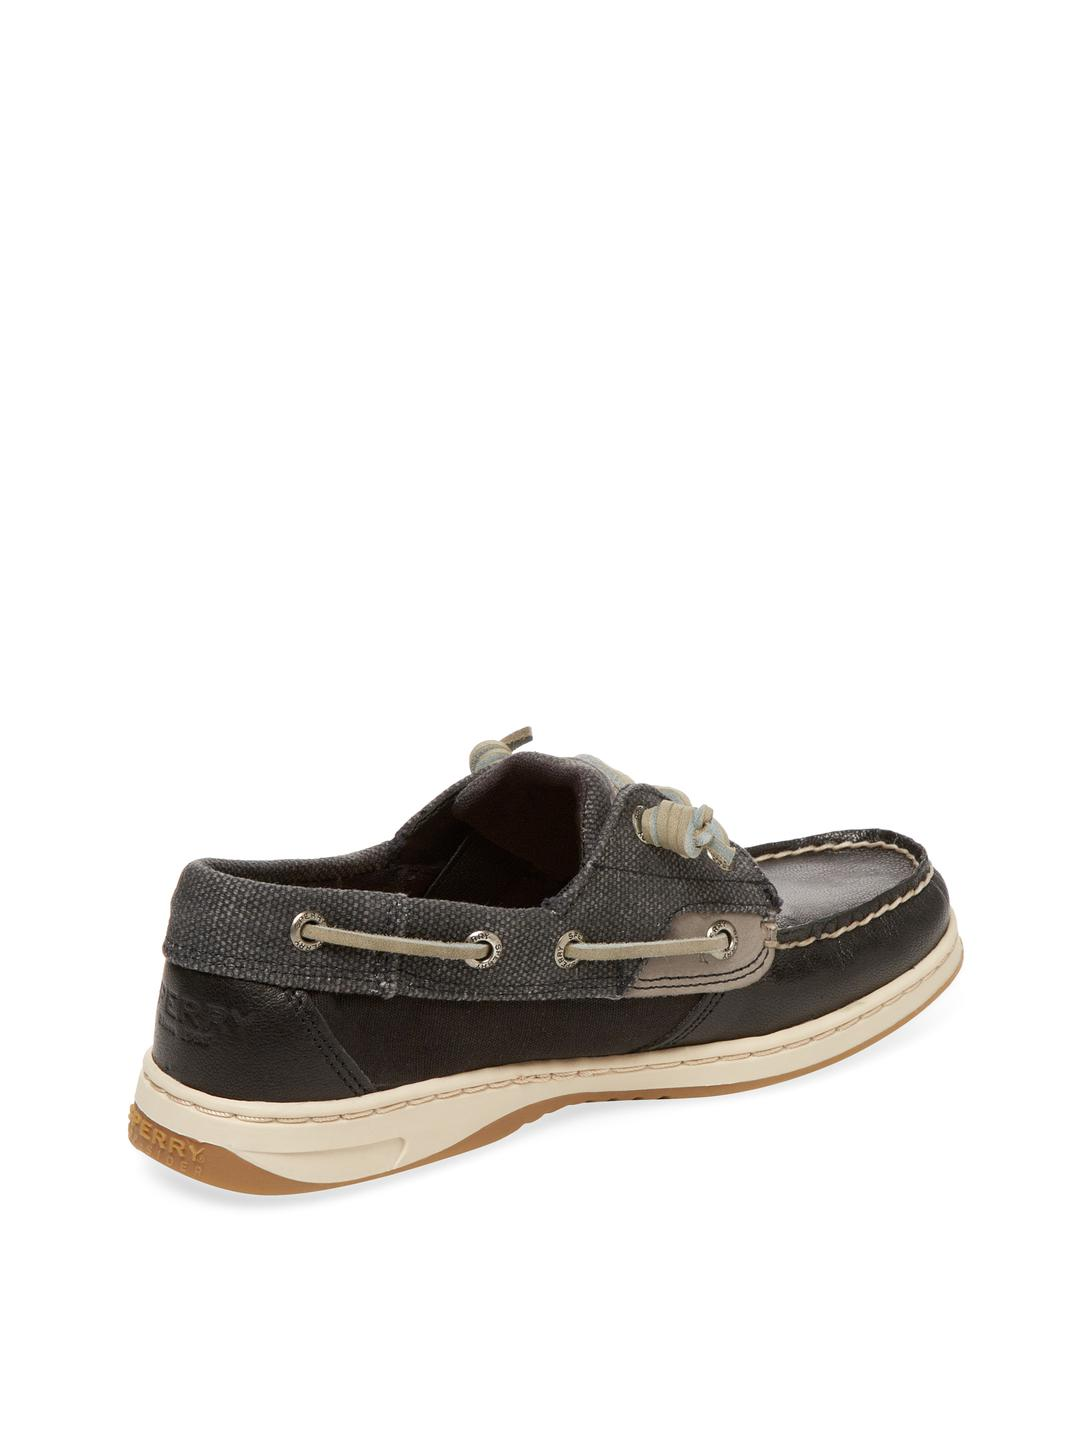 9bf91b63a1a24 Sperry Top-Sider Black Ivyfish Waxed Boat Shoe for men